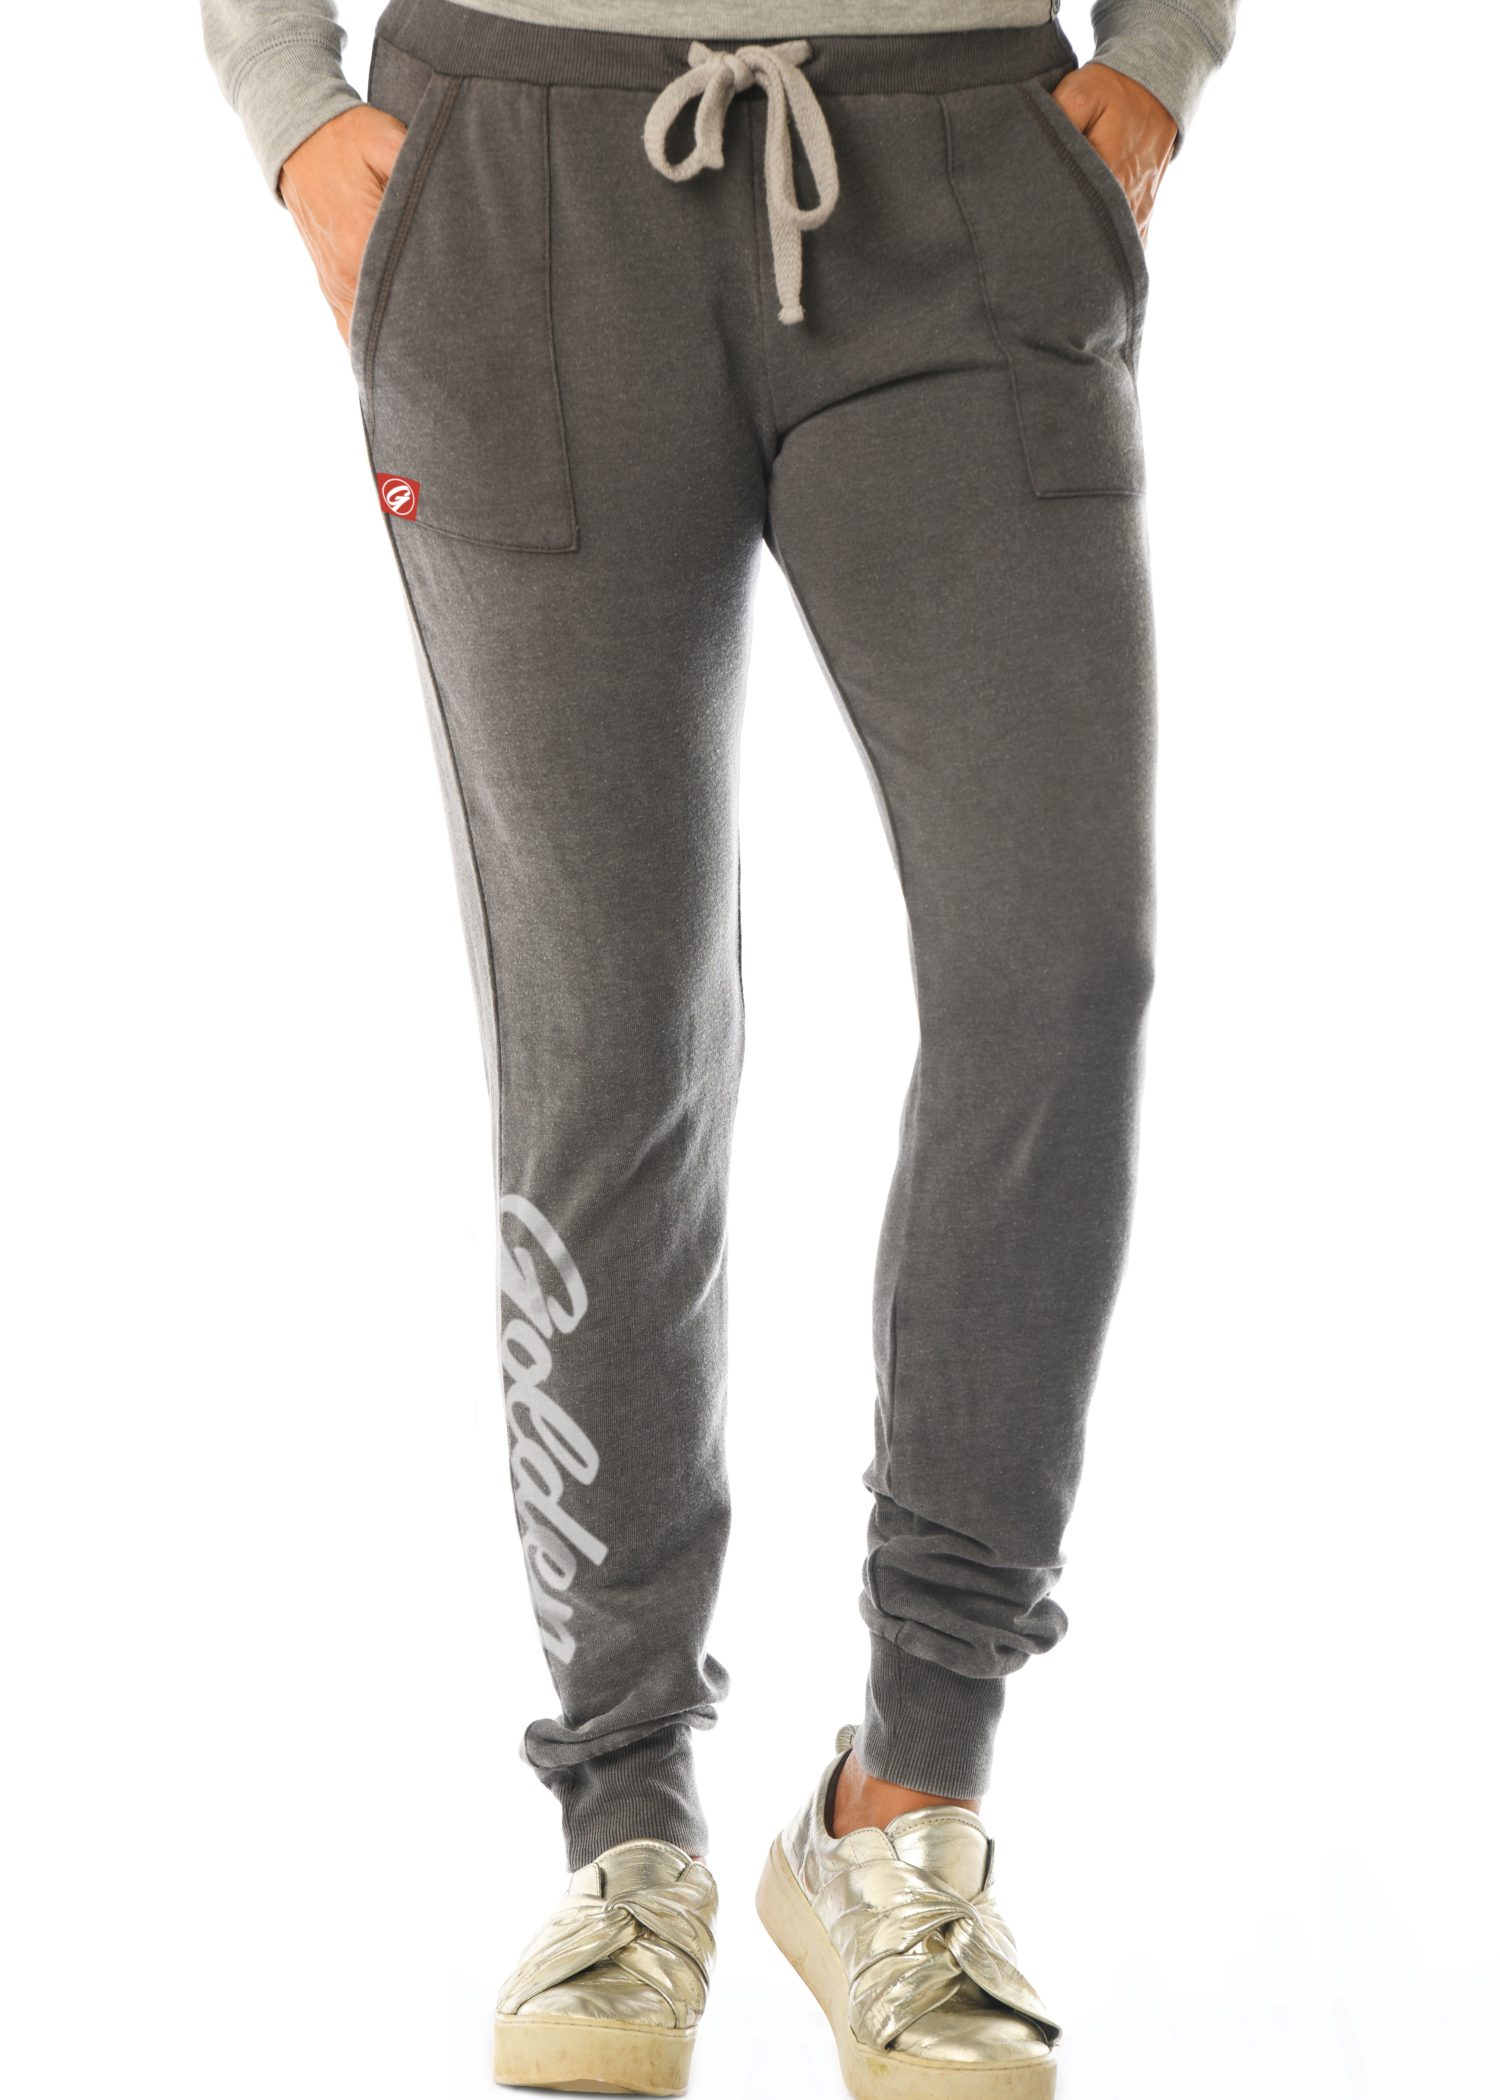 GG 350 Women's FT Wornwash Jogger-front GG